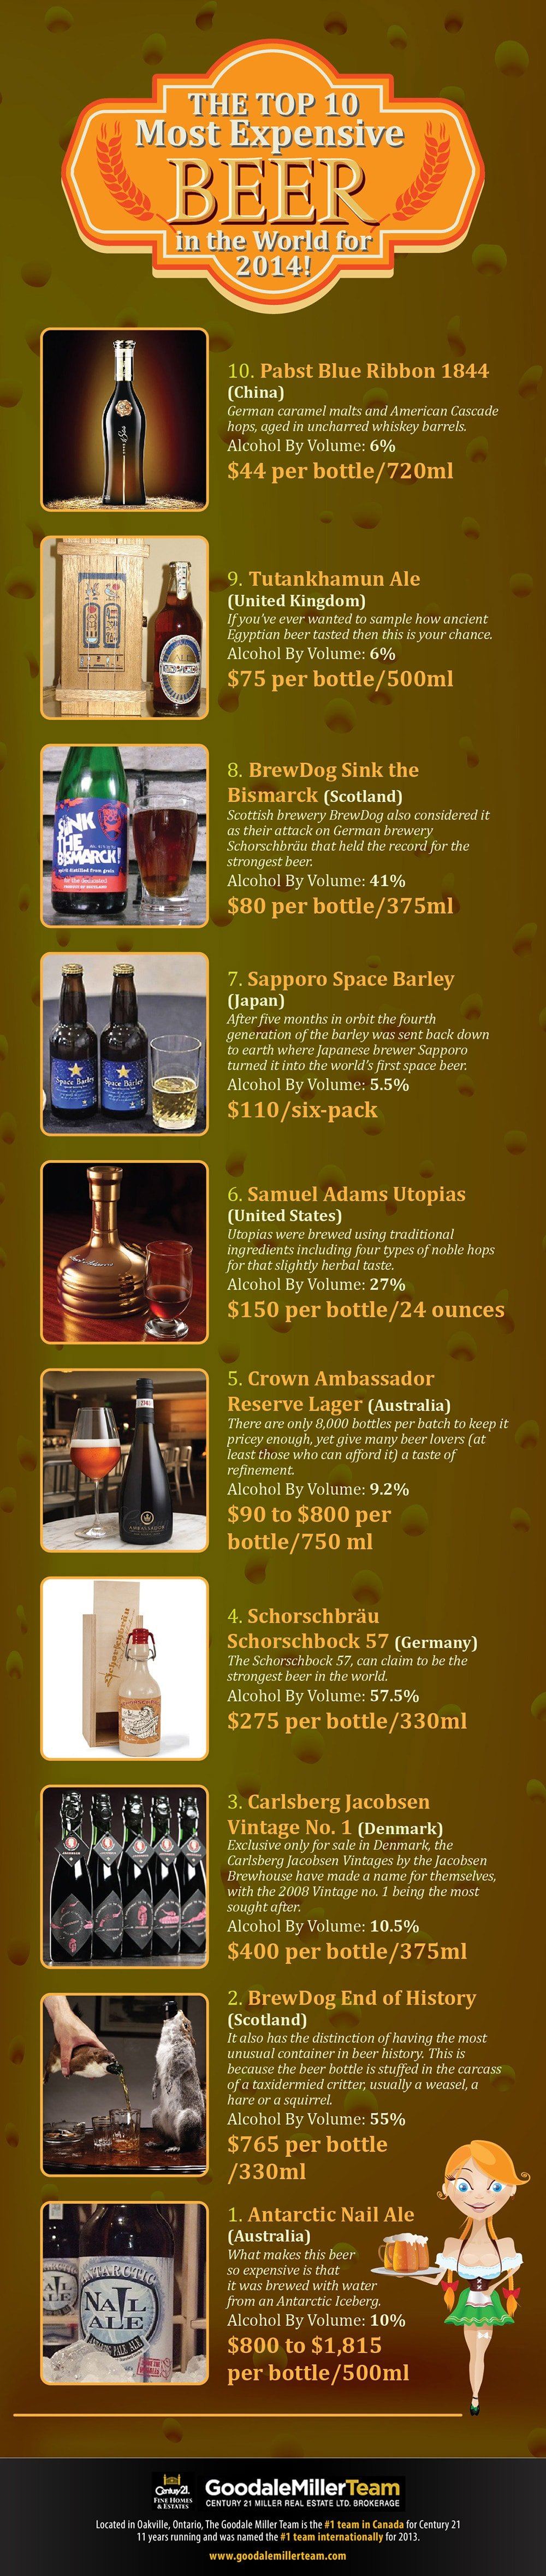 Infographic: The World's Top 10 Luxury Beers